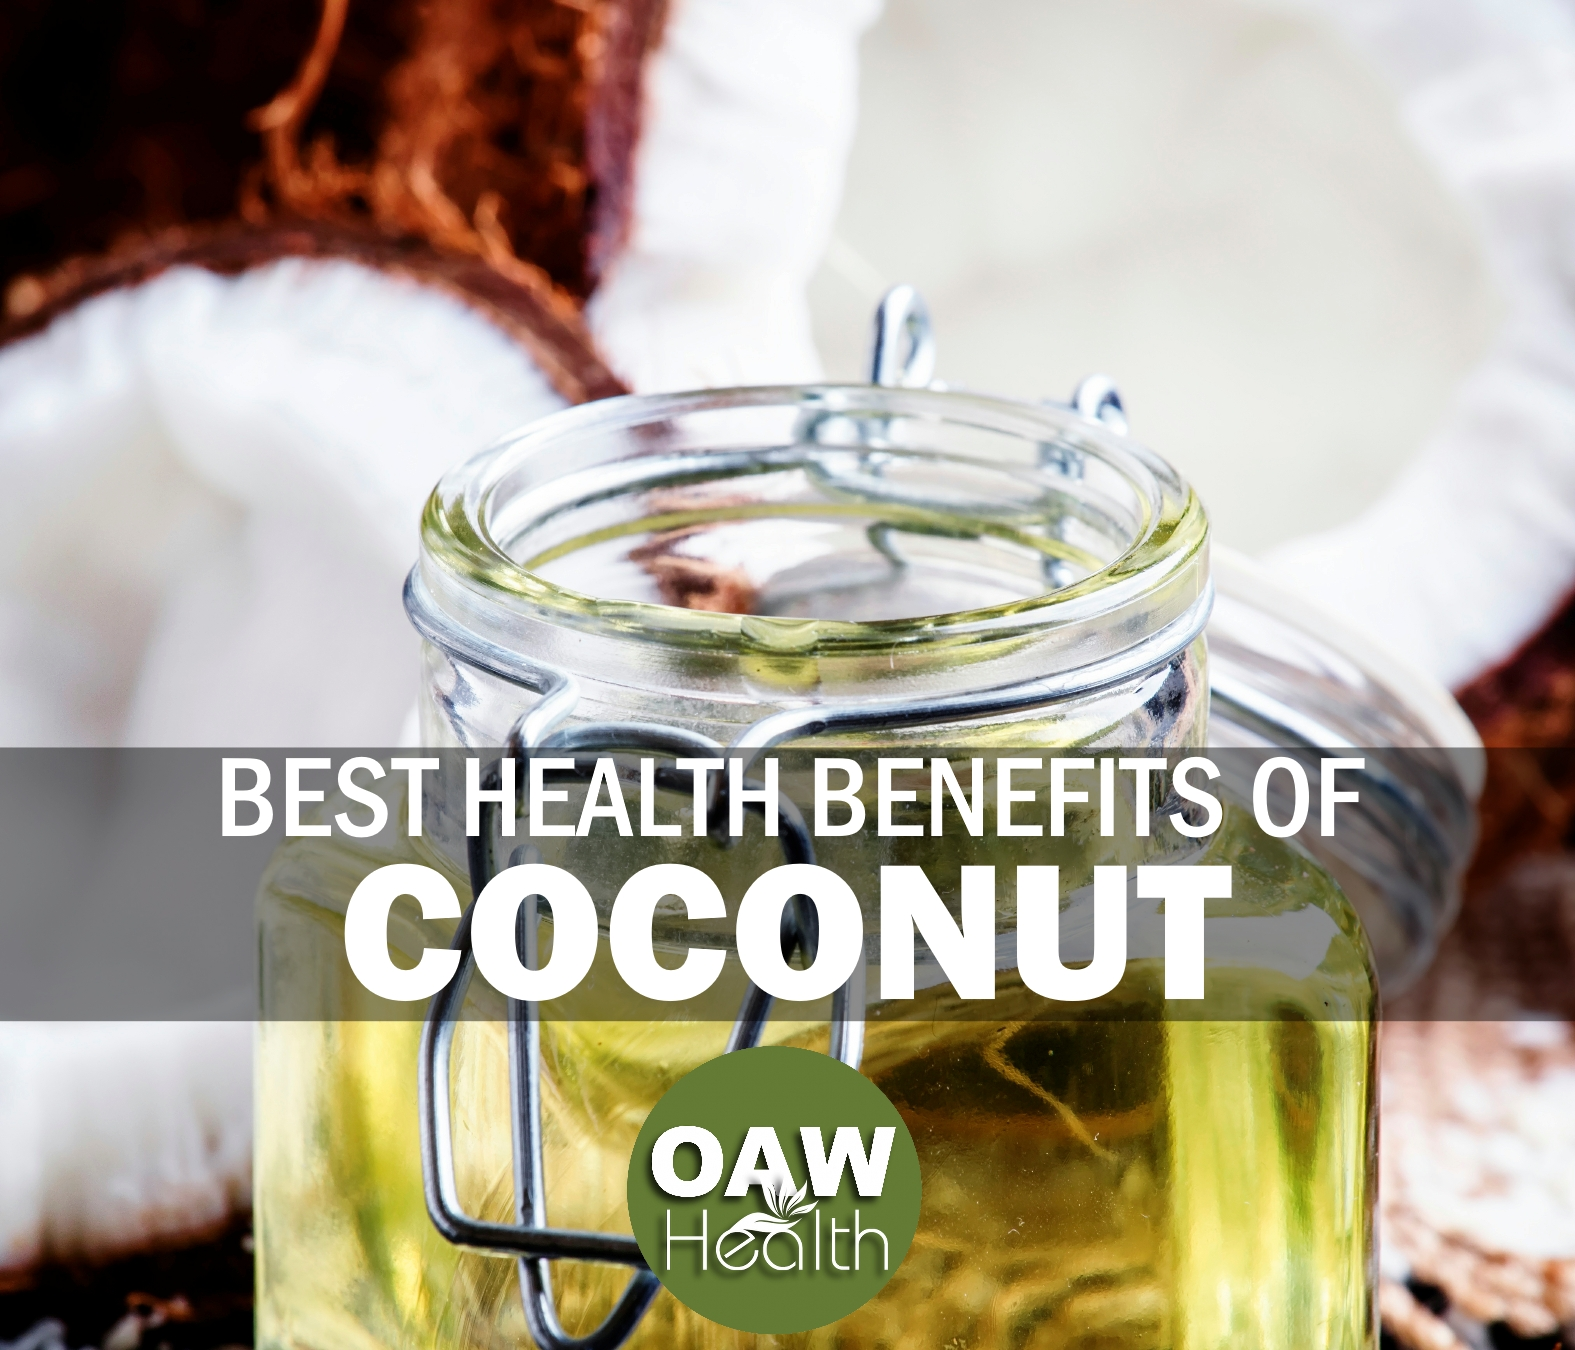 Best Health Benefits of Coconut